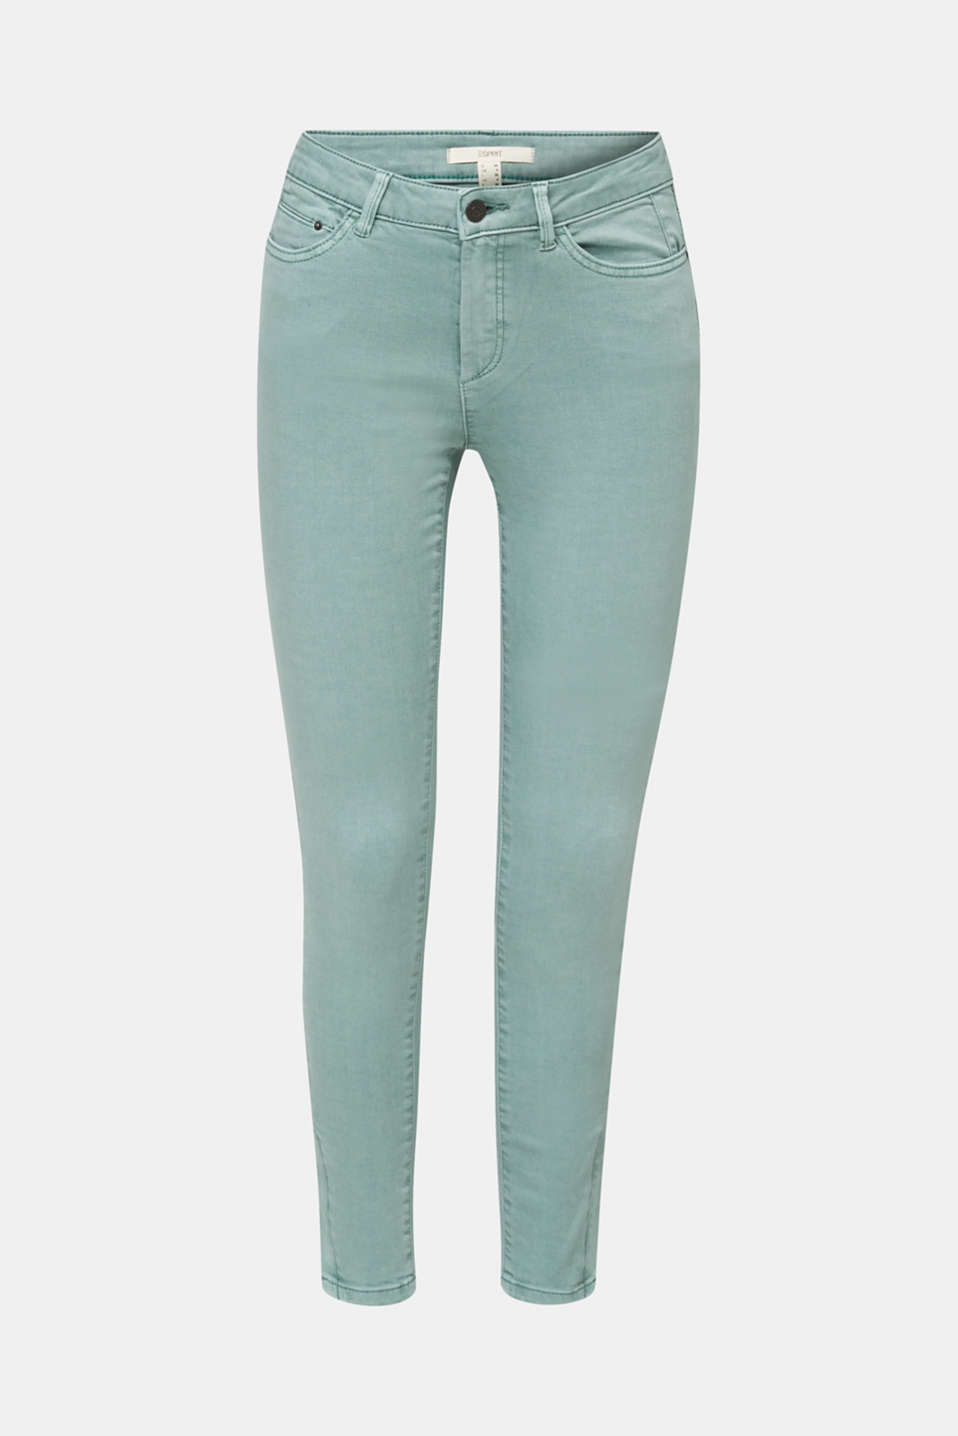 Ankle-length stretch trousers with hem zips, LIGHT AQUA GREEN, detail image number 7